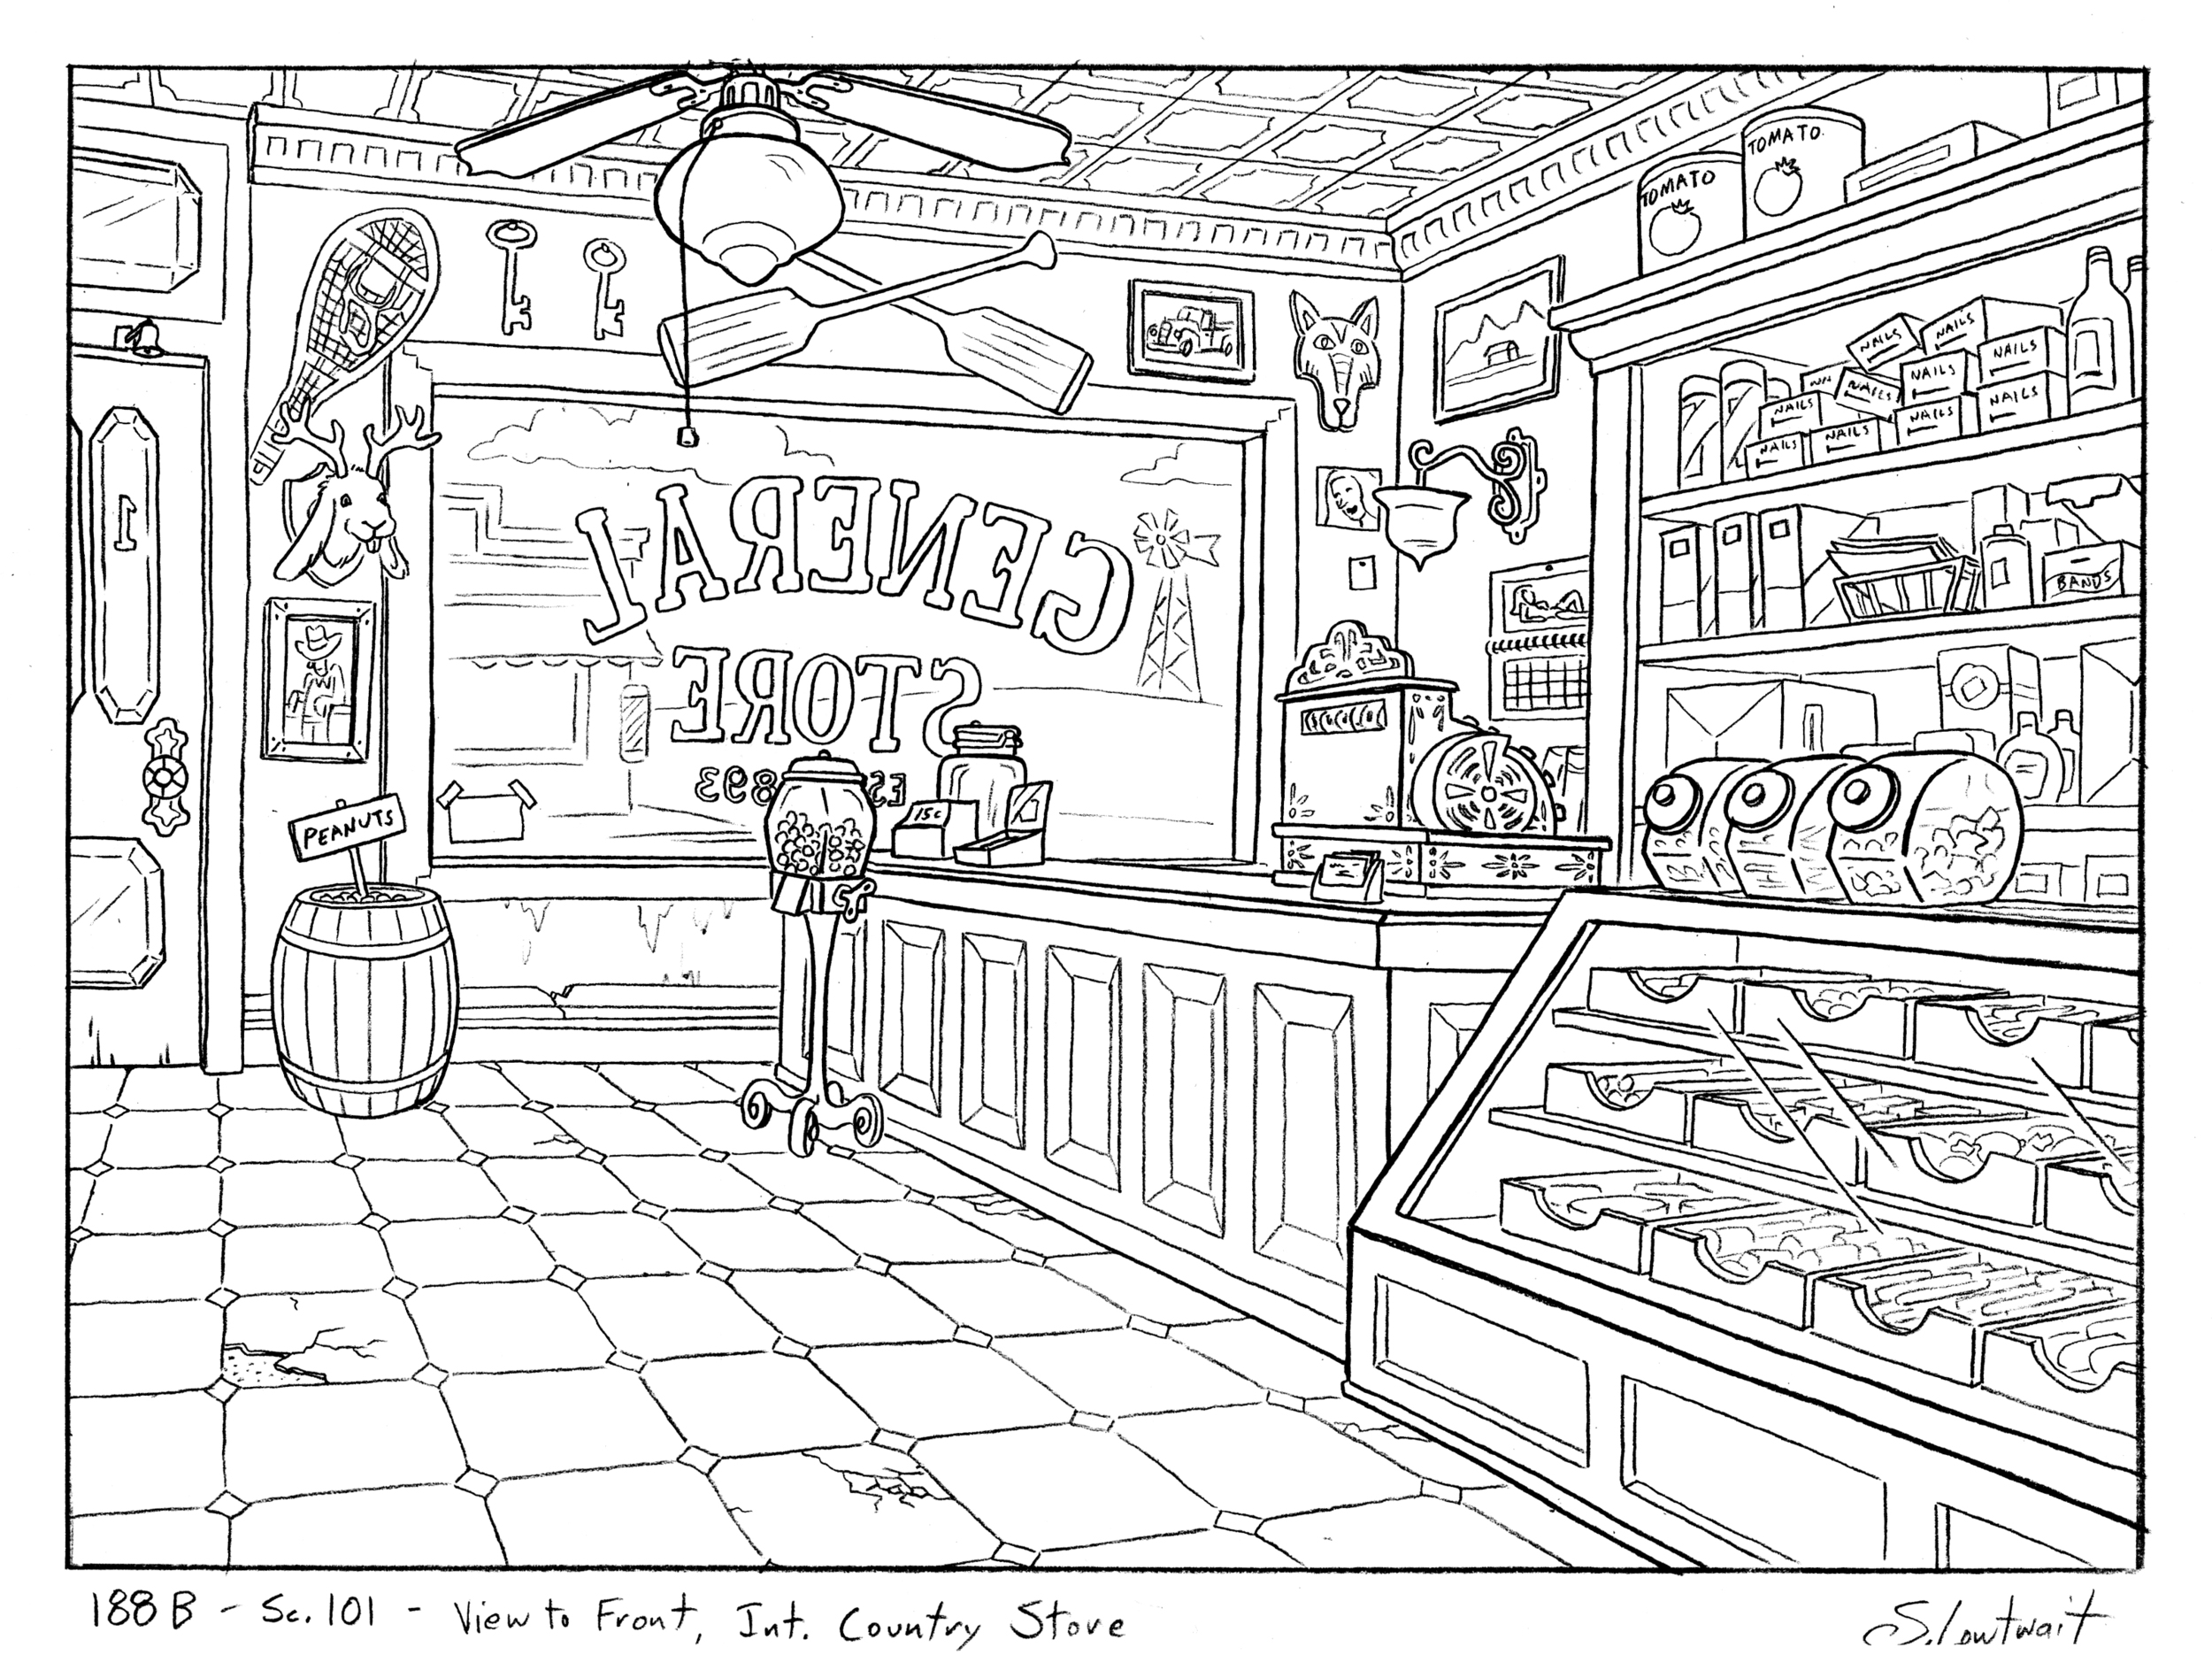 Here's the inside of that general store from the last scene. Jackalope, check!